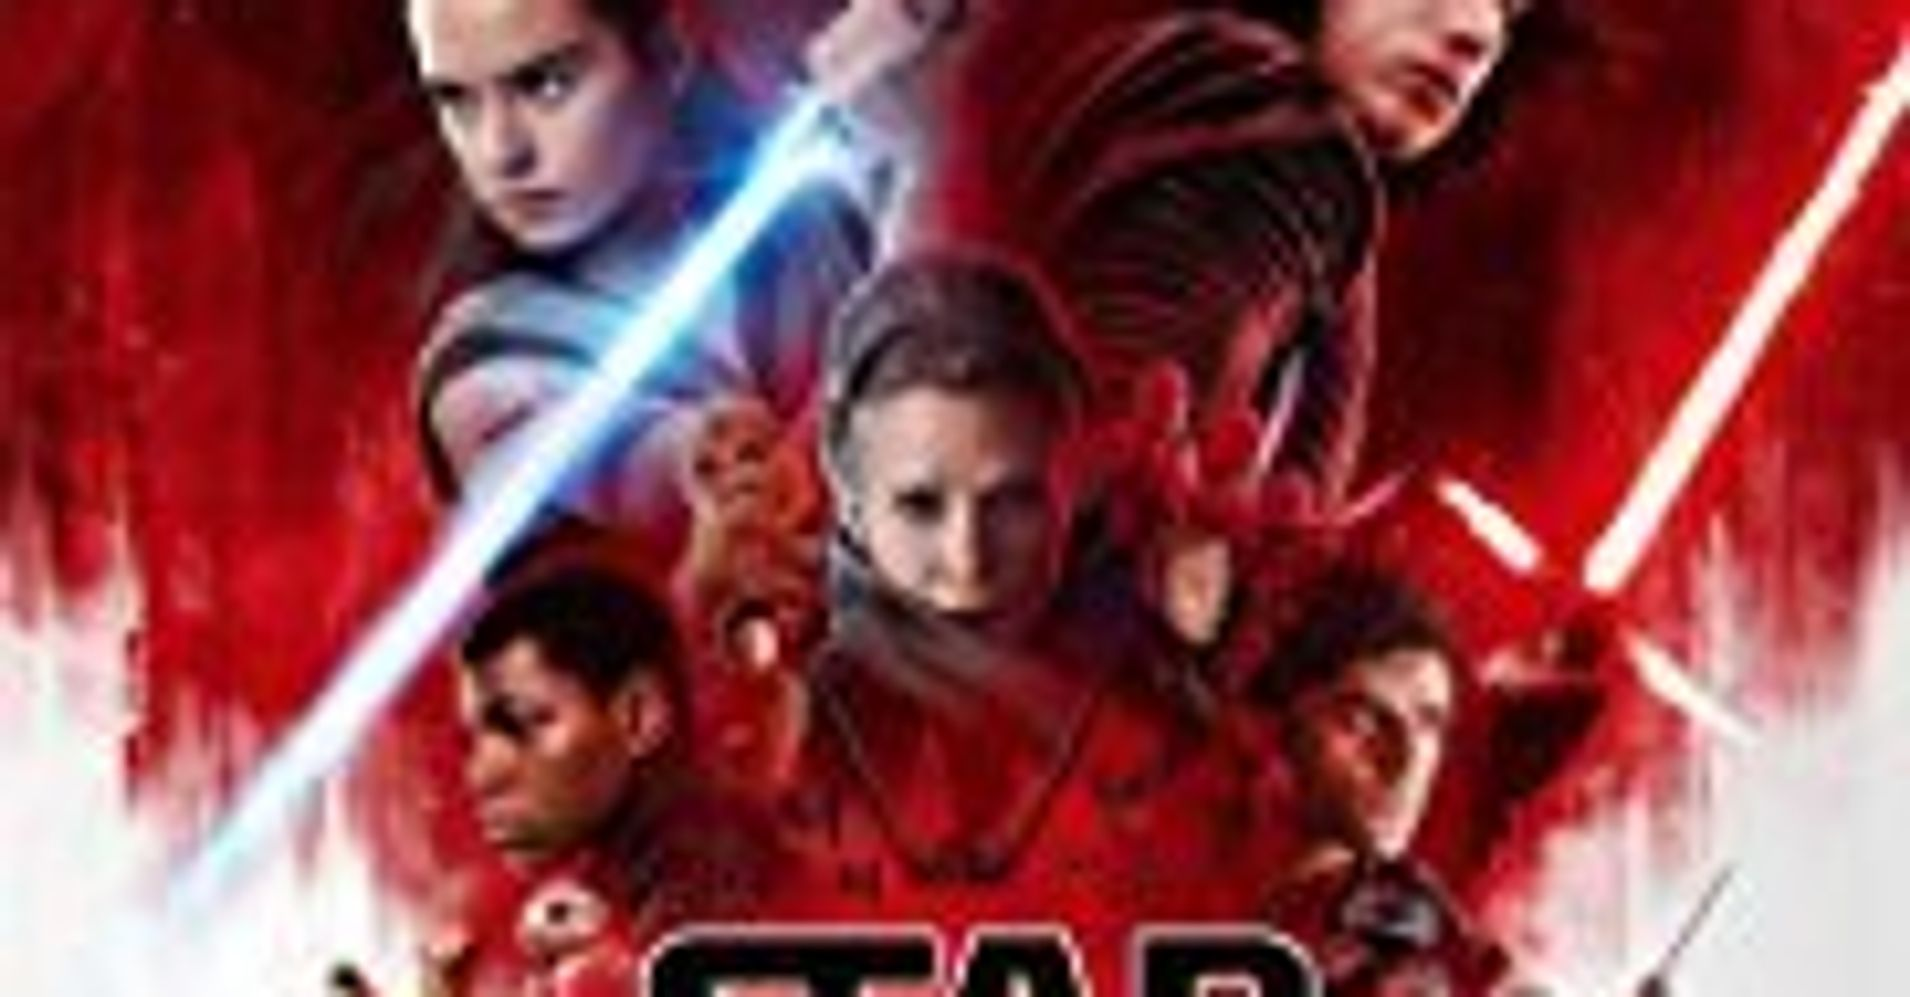 Star Wars: The Last Jedi – Just as Mind-Boggling As The Others!